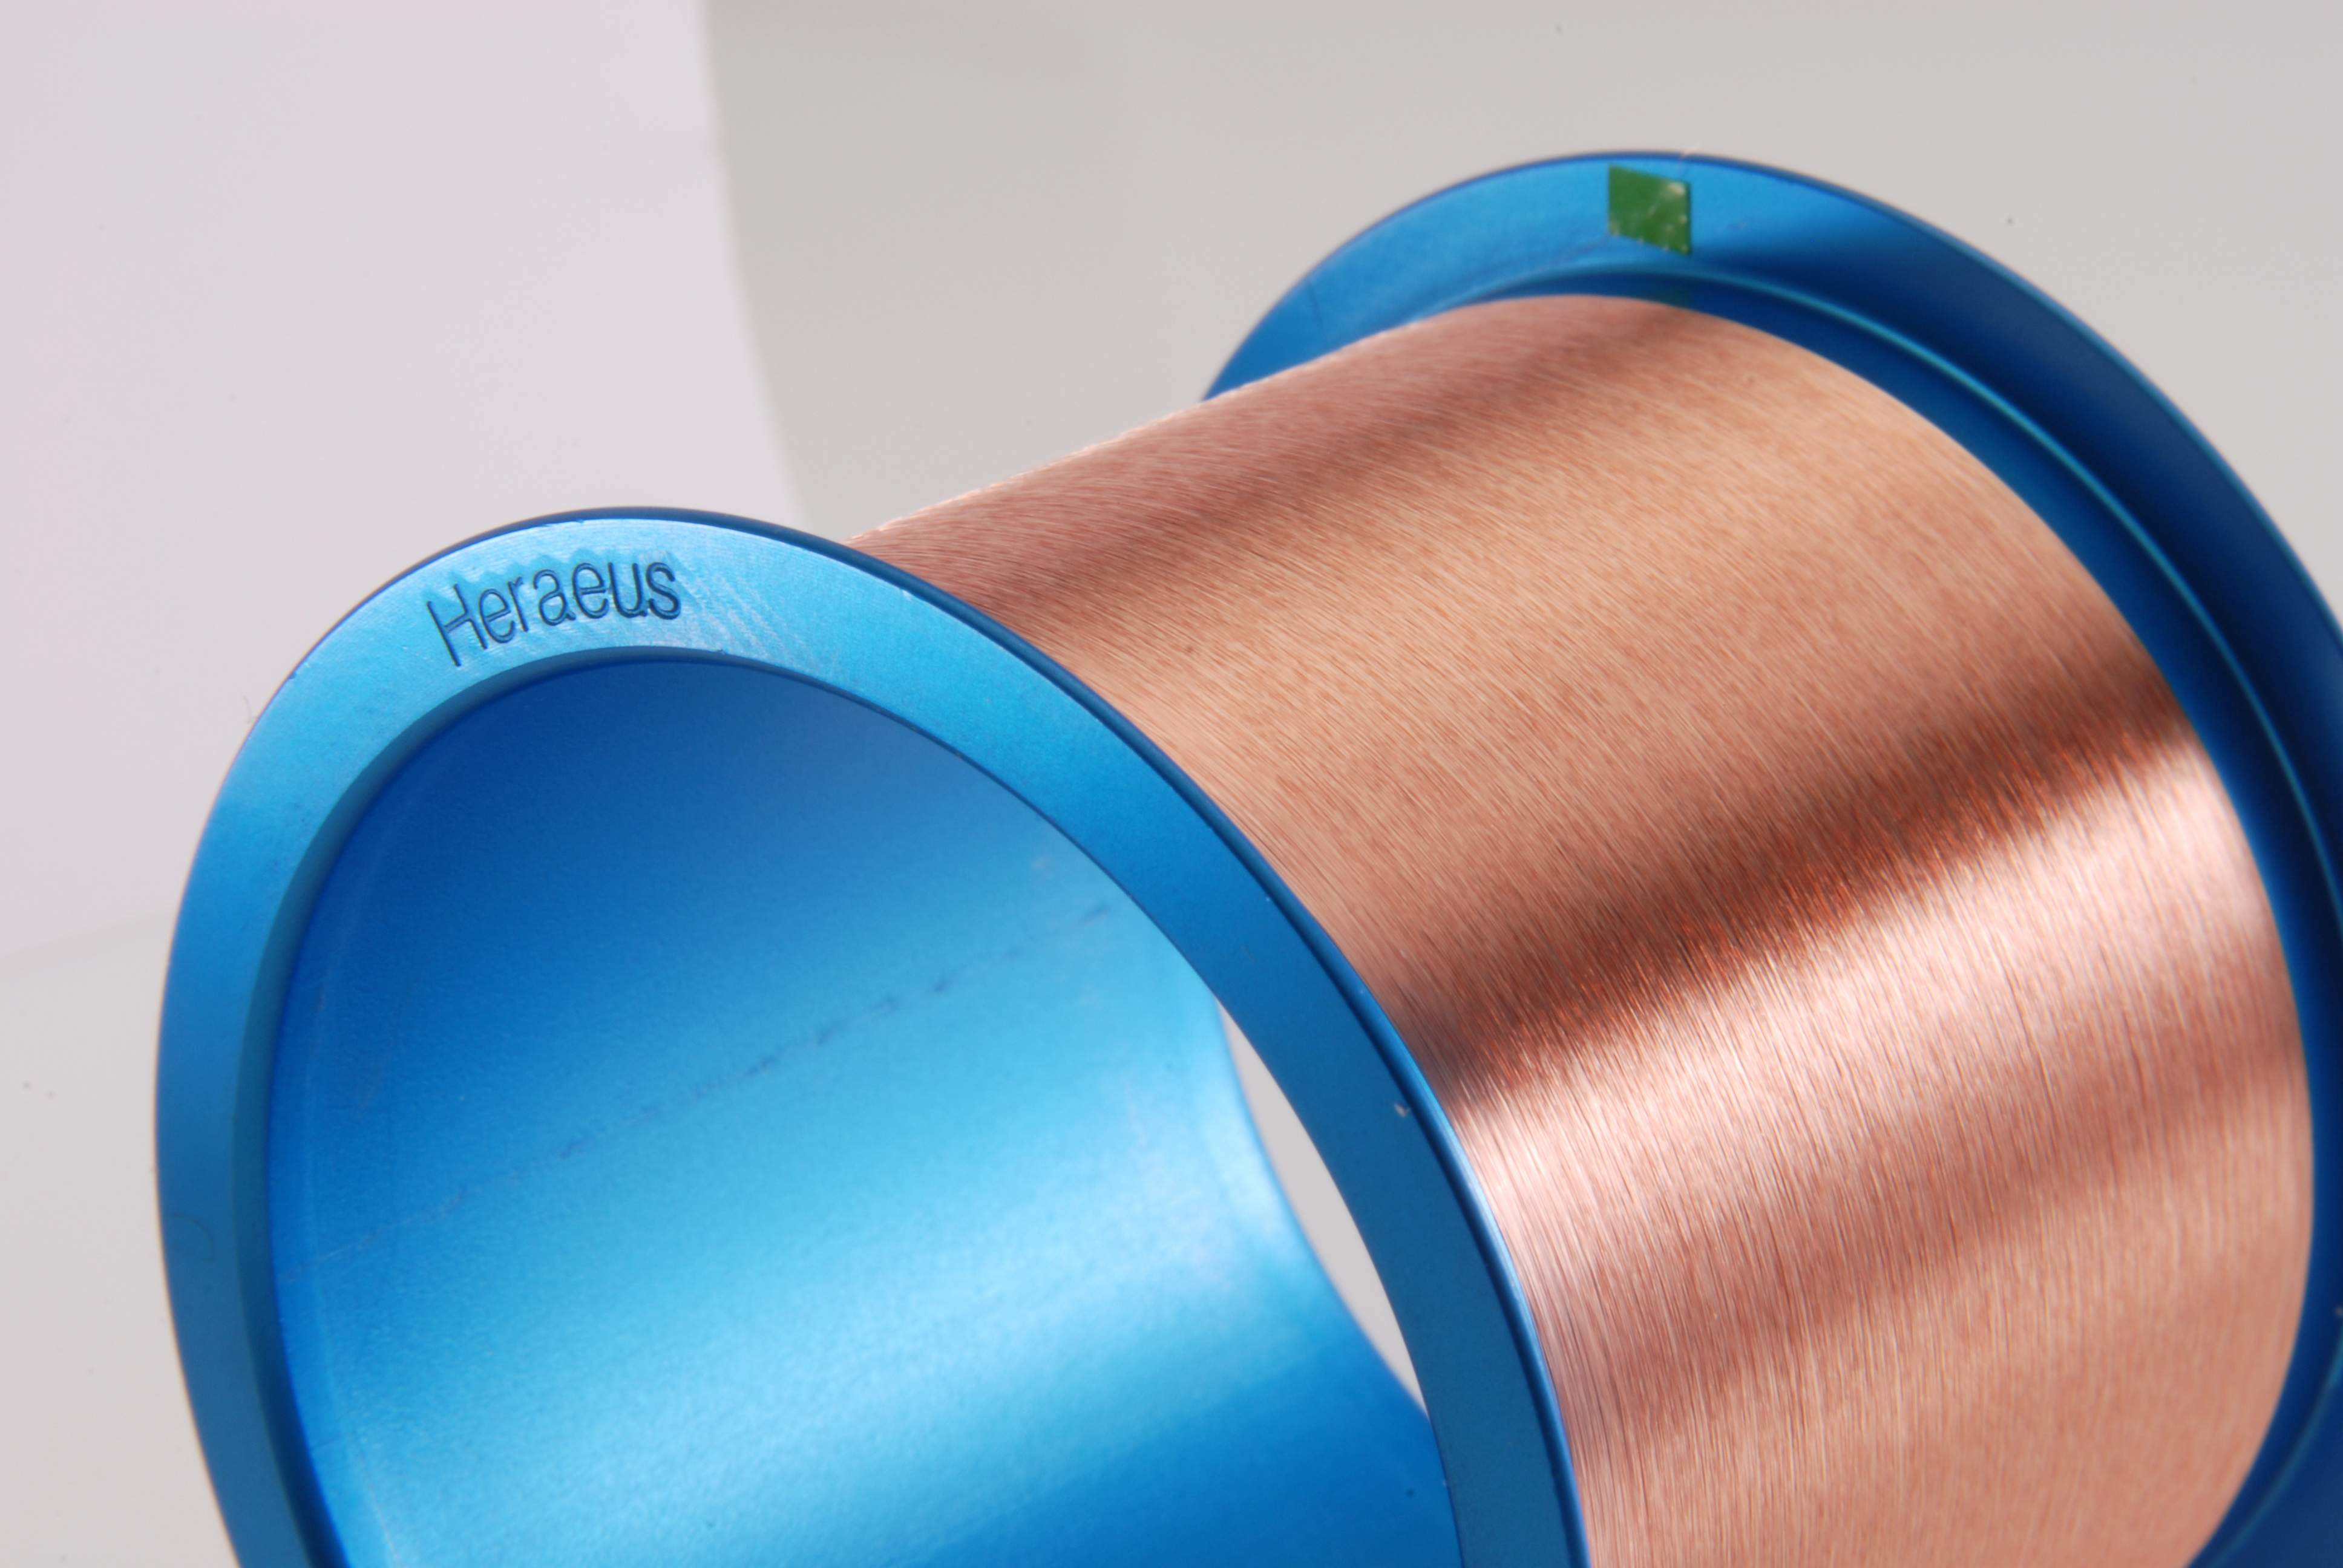 Heraeus Electronics Copper and Coated Copper Bonding Wires